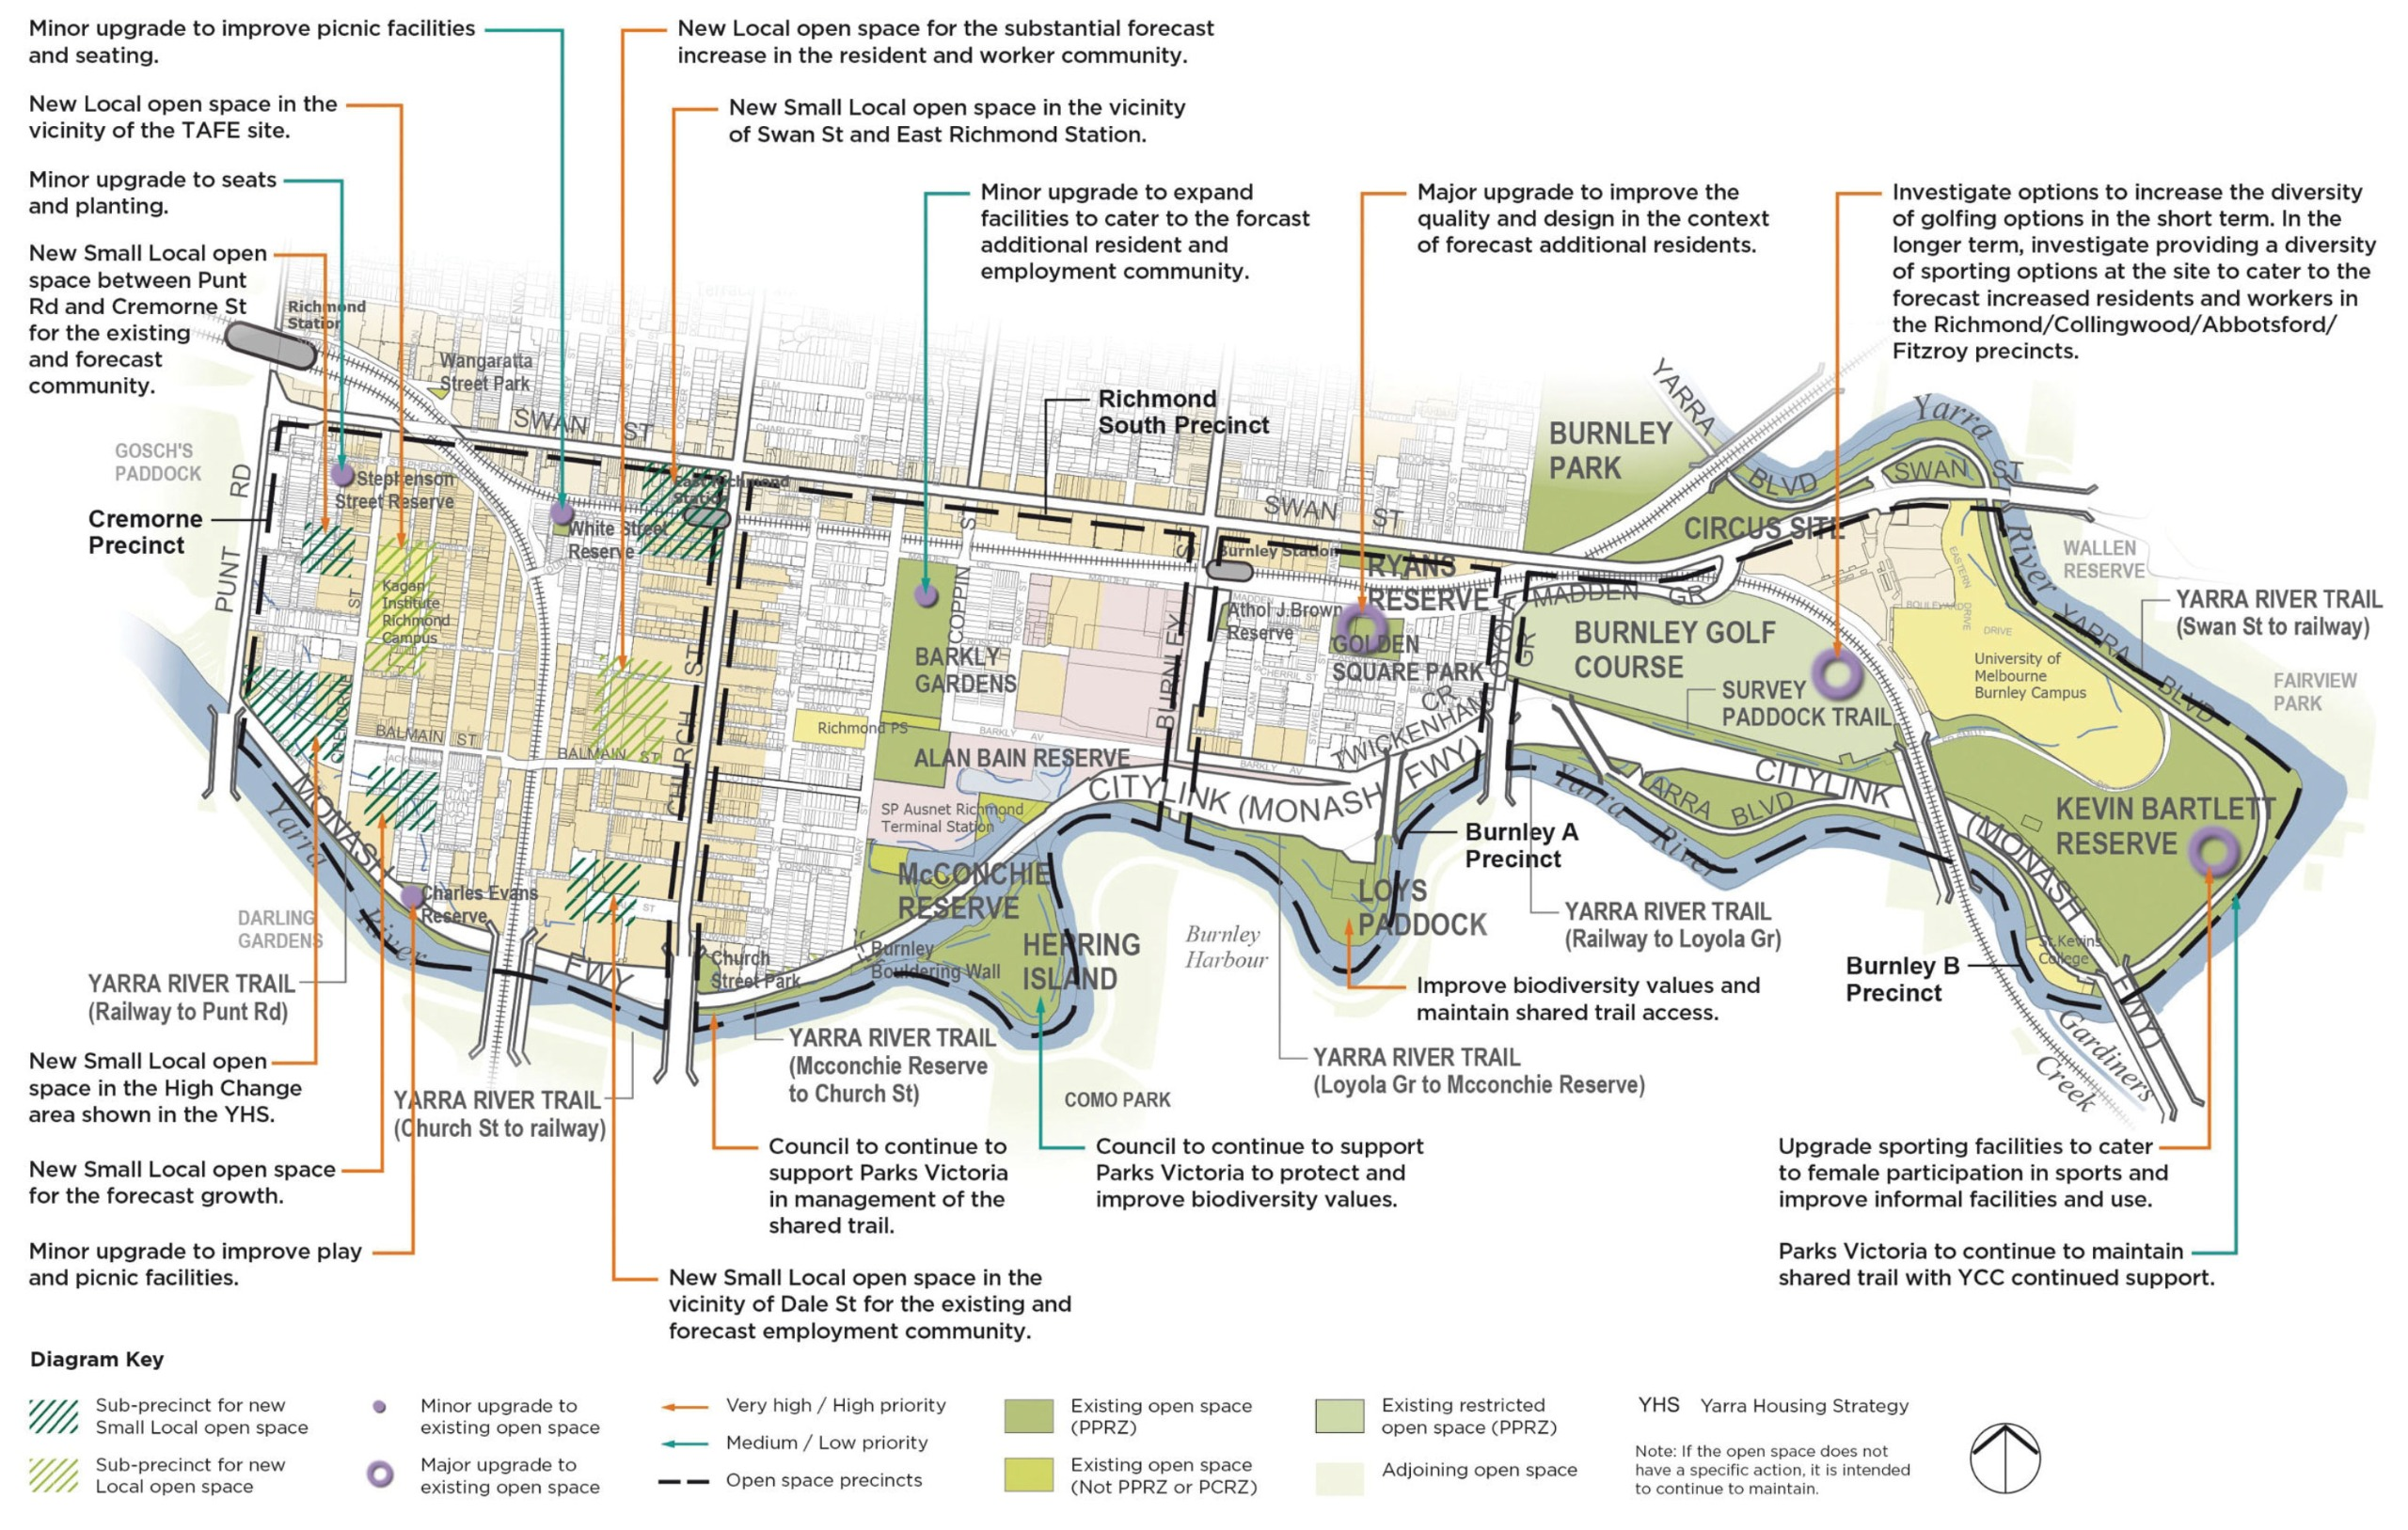 Recommendations for the Cremorne, Richmond South and Burnley precinct